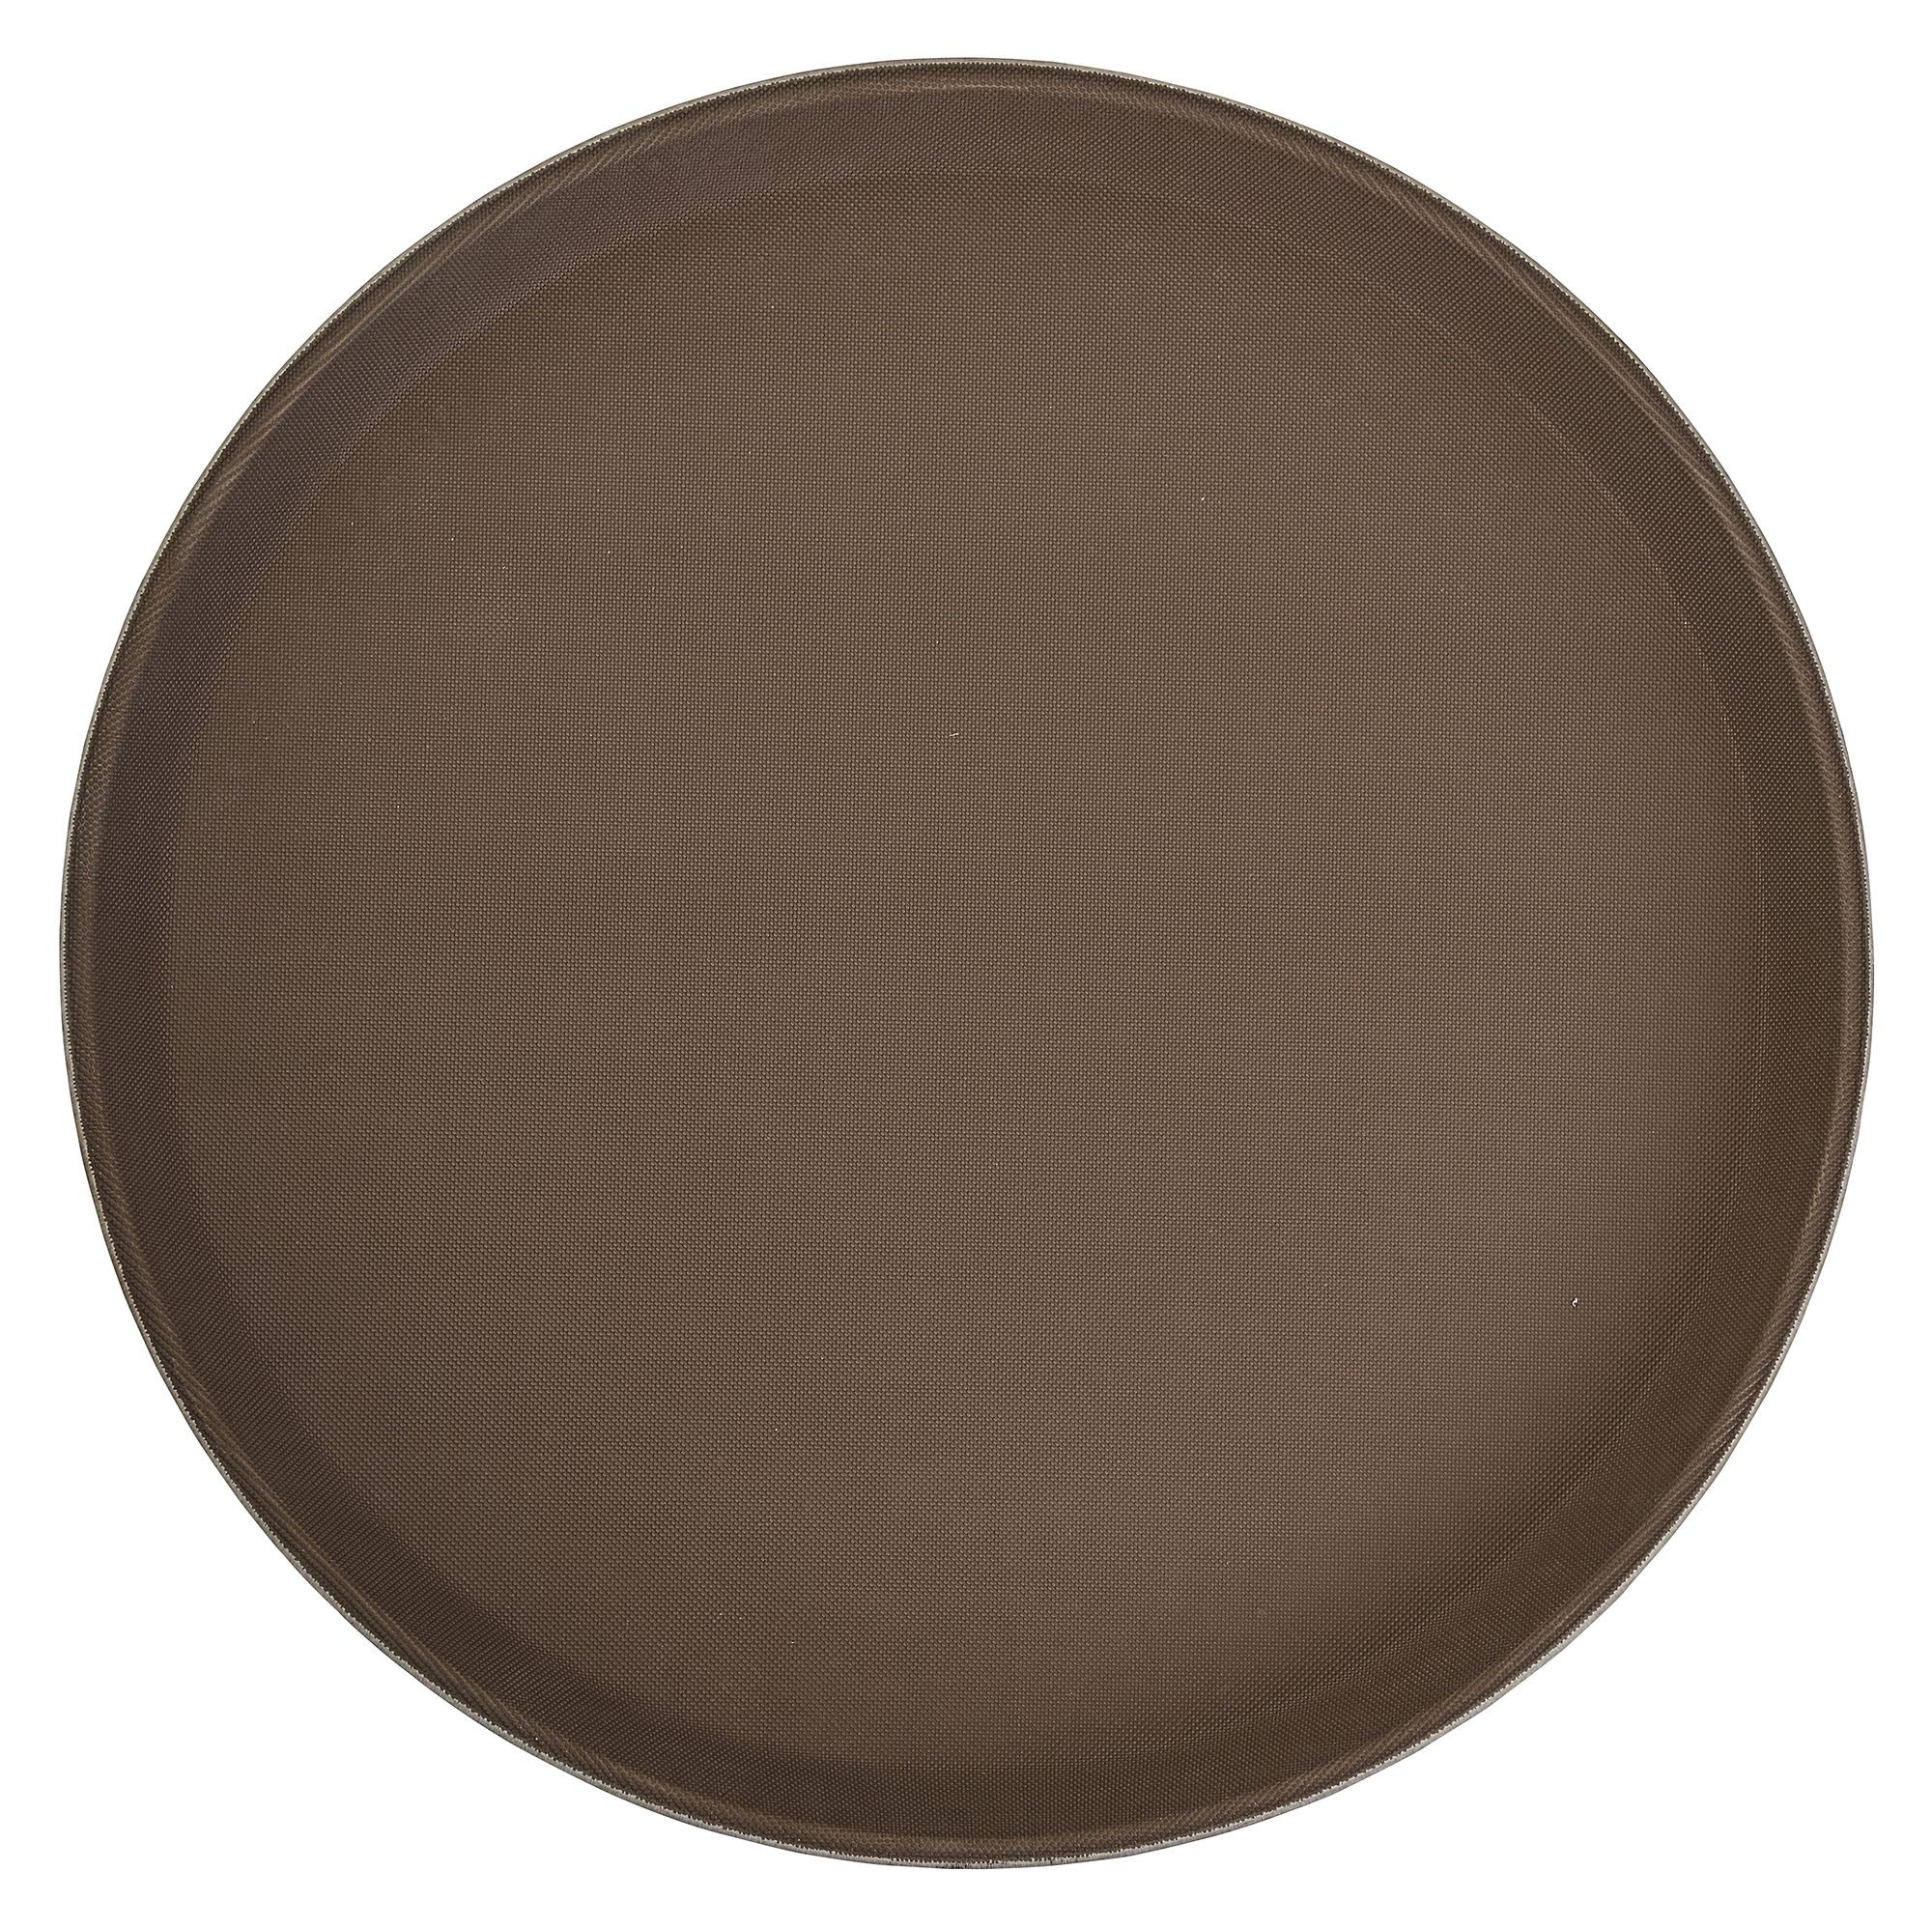 Non-Slip Fiberglass Tray Brown, 14